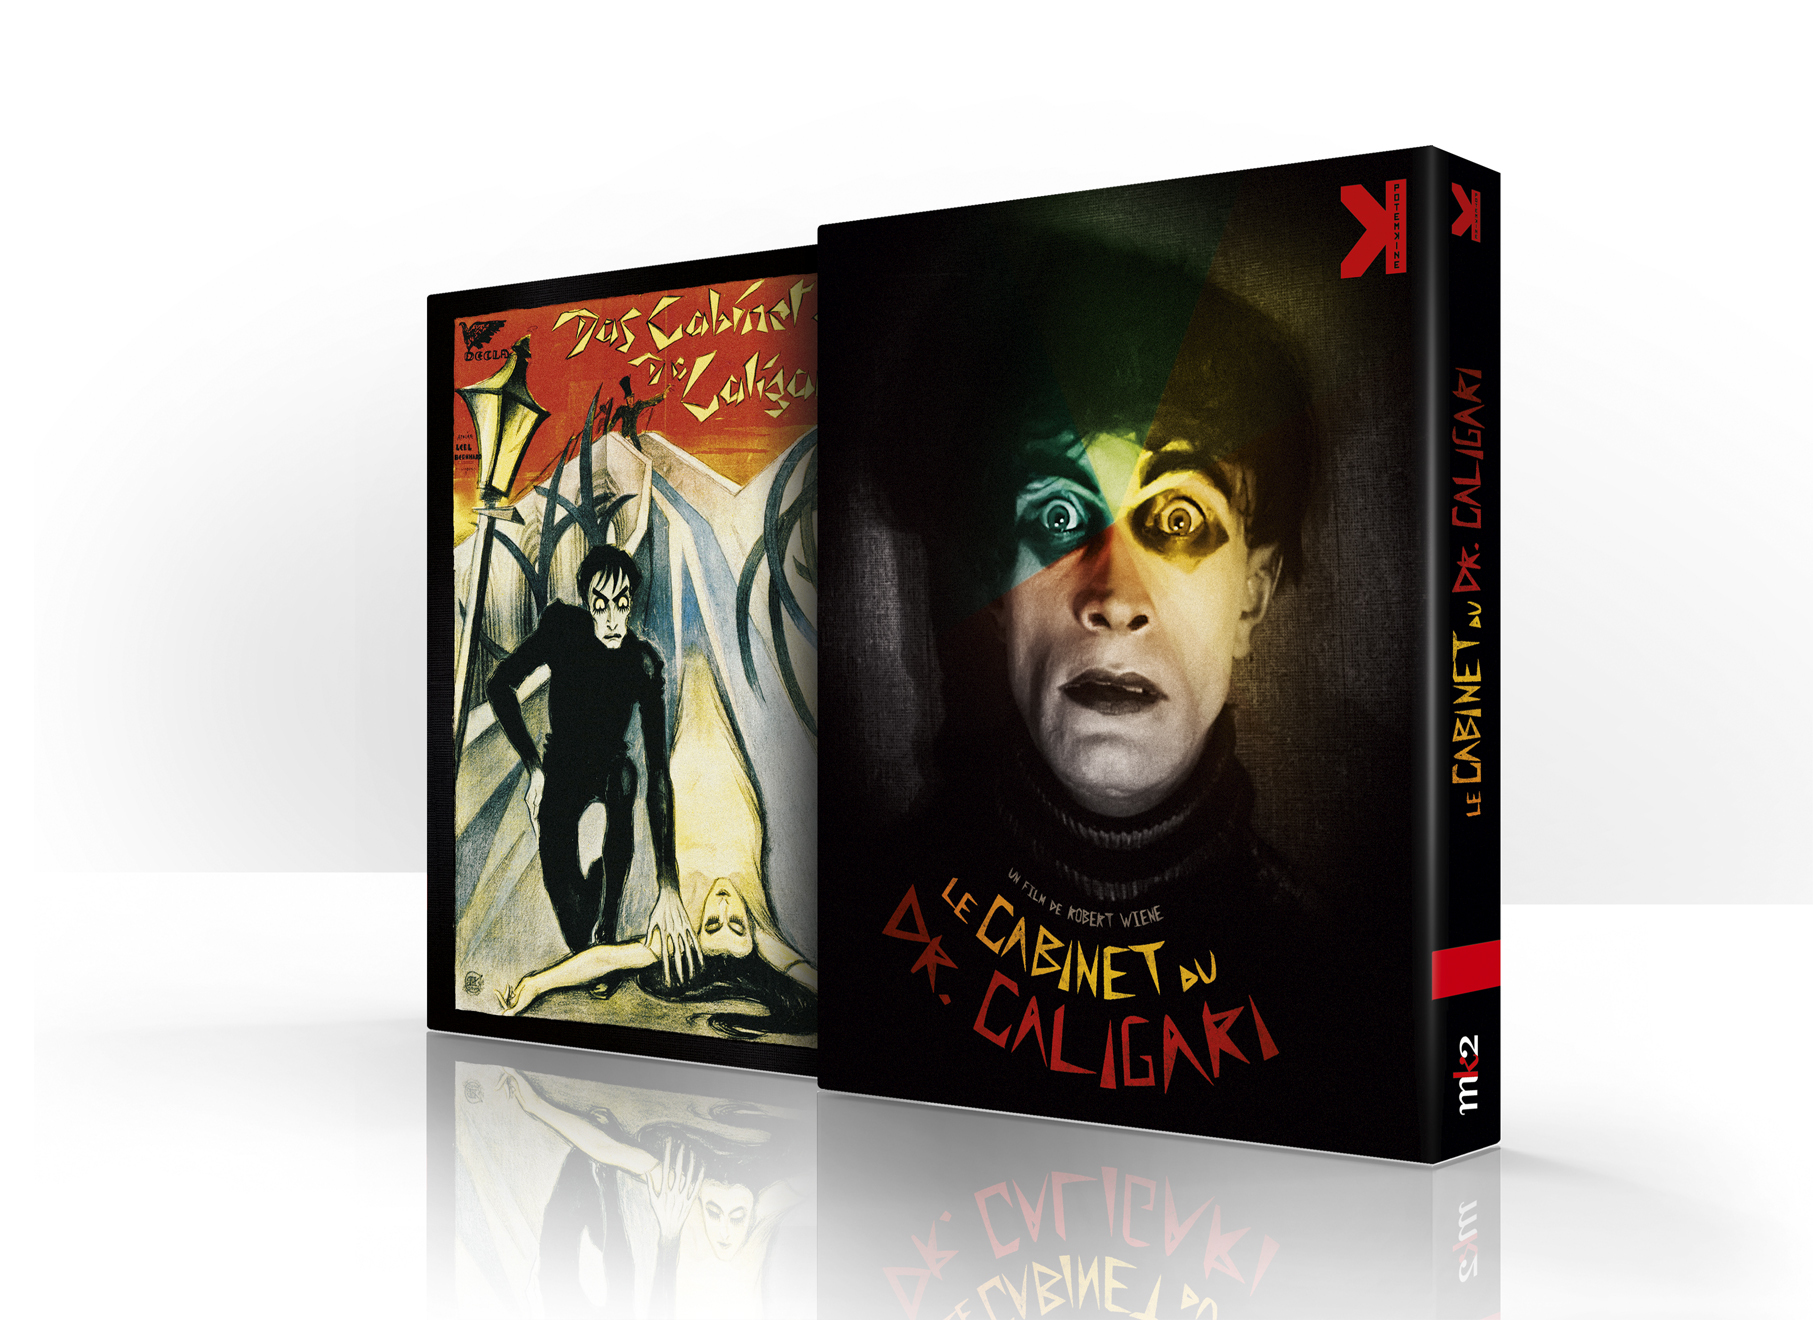 CABINET DU DR CALIGARI - COMBO DVD + BLU-RAY